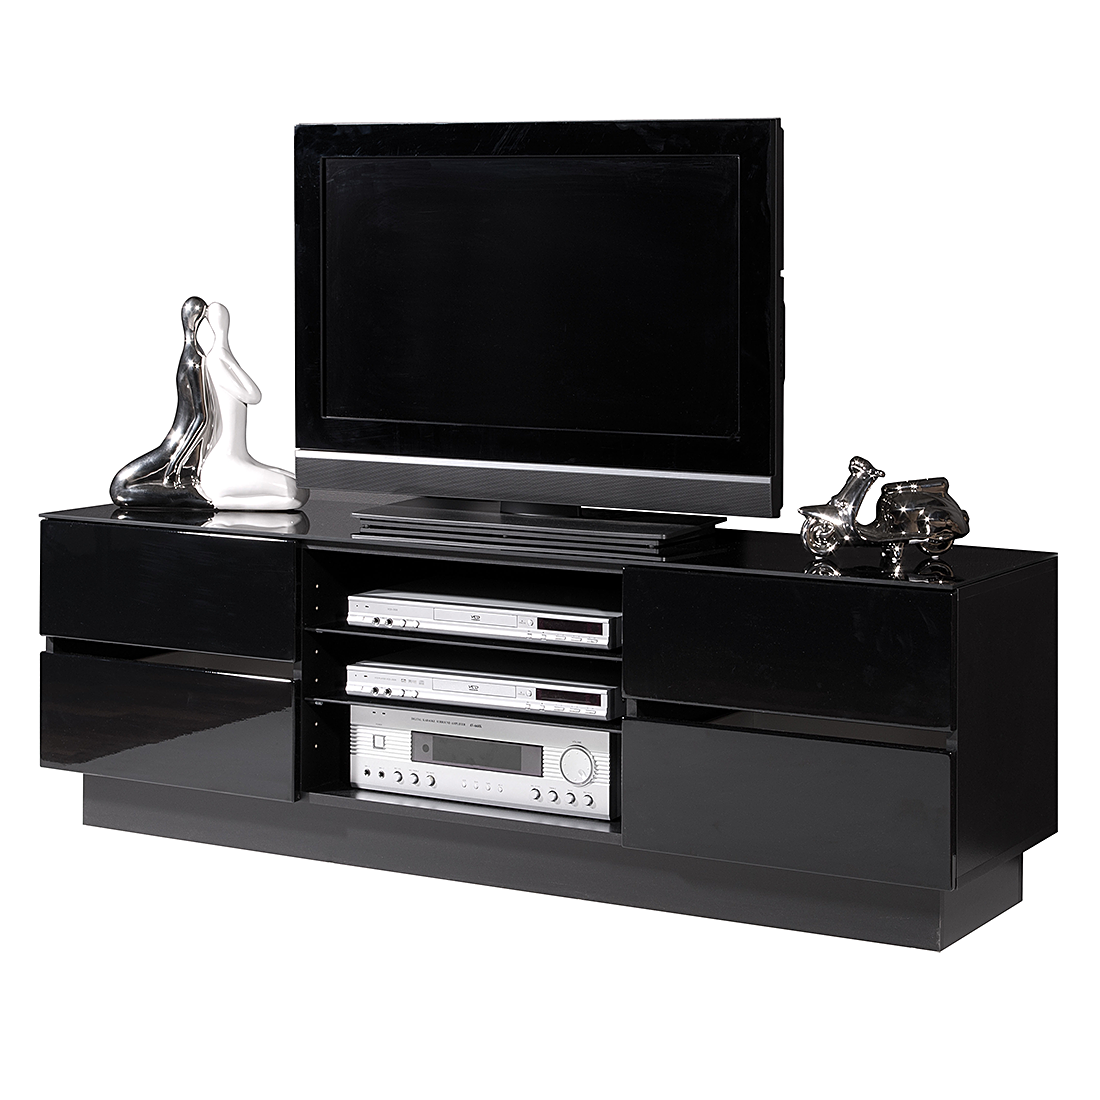 tv lowboard leander hochglanz schwarz top square m bel profi. Black Bedroom Furniture Sets. Home Design Ideas